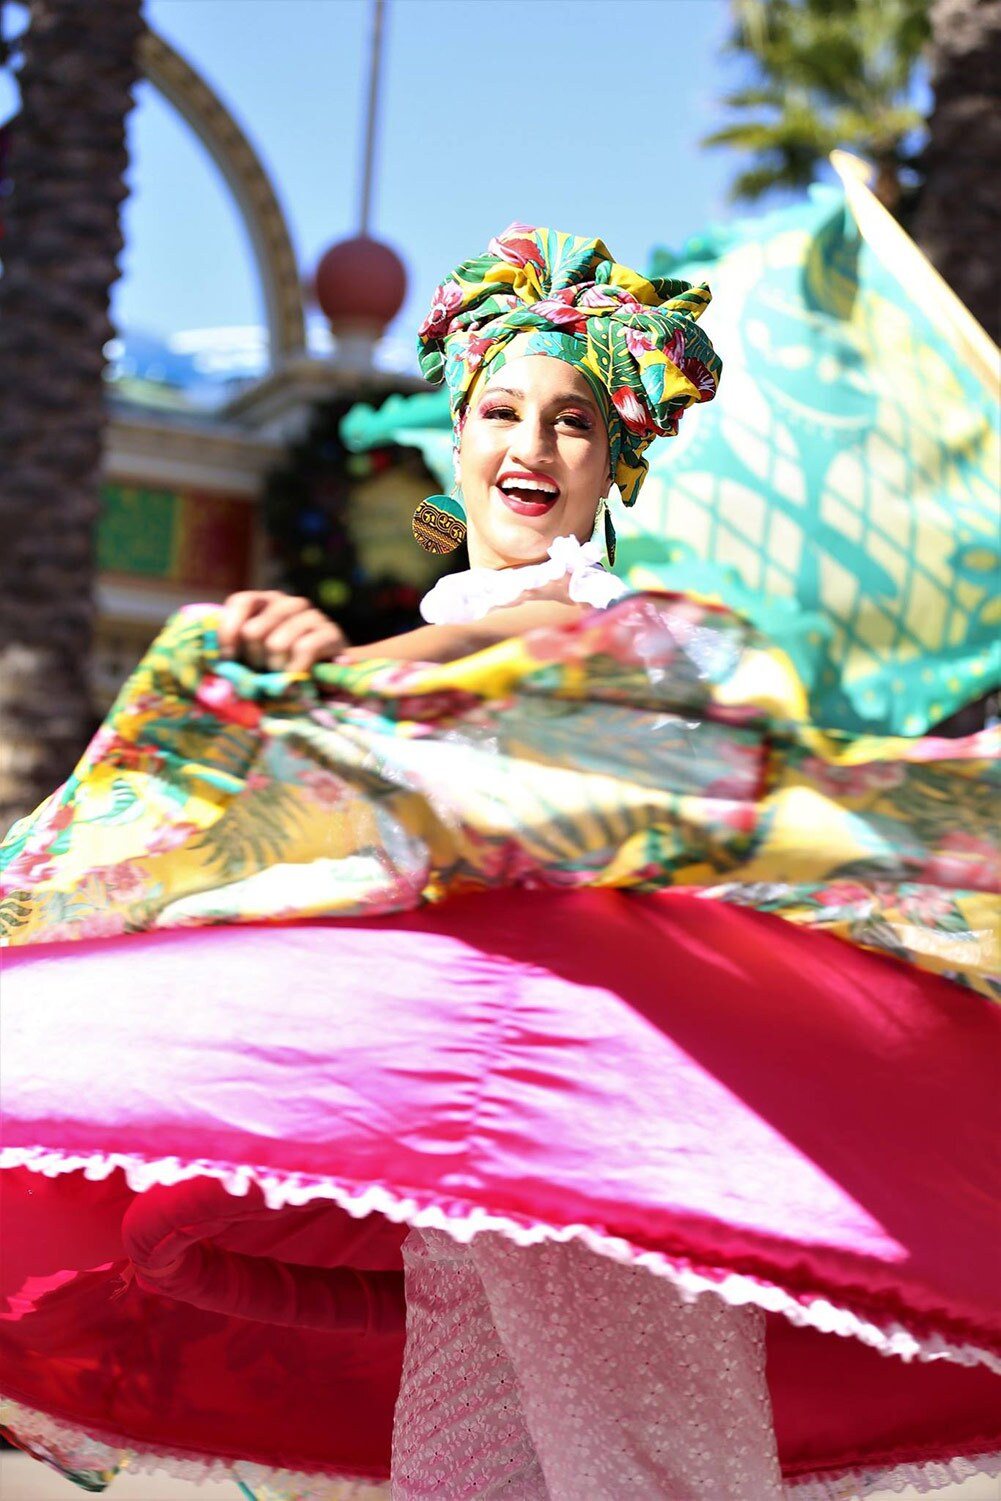 A colorful dancer in swirls of color during Disney California Adventure Park's ¡Viva Navidad! Street Party parade | Courtesy of Viver Brasil